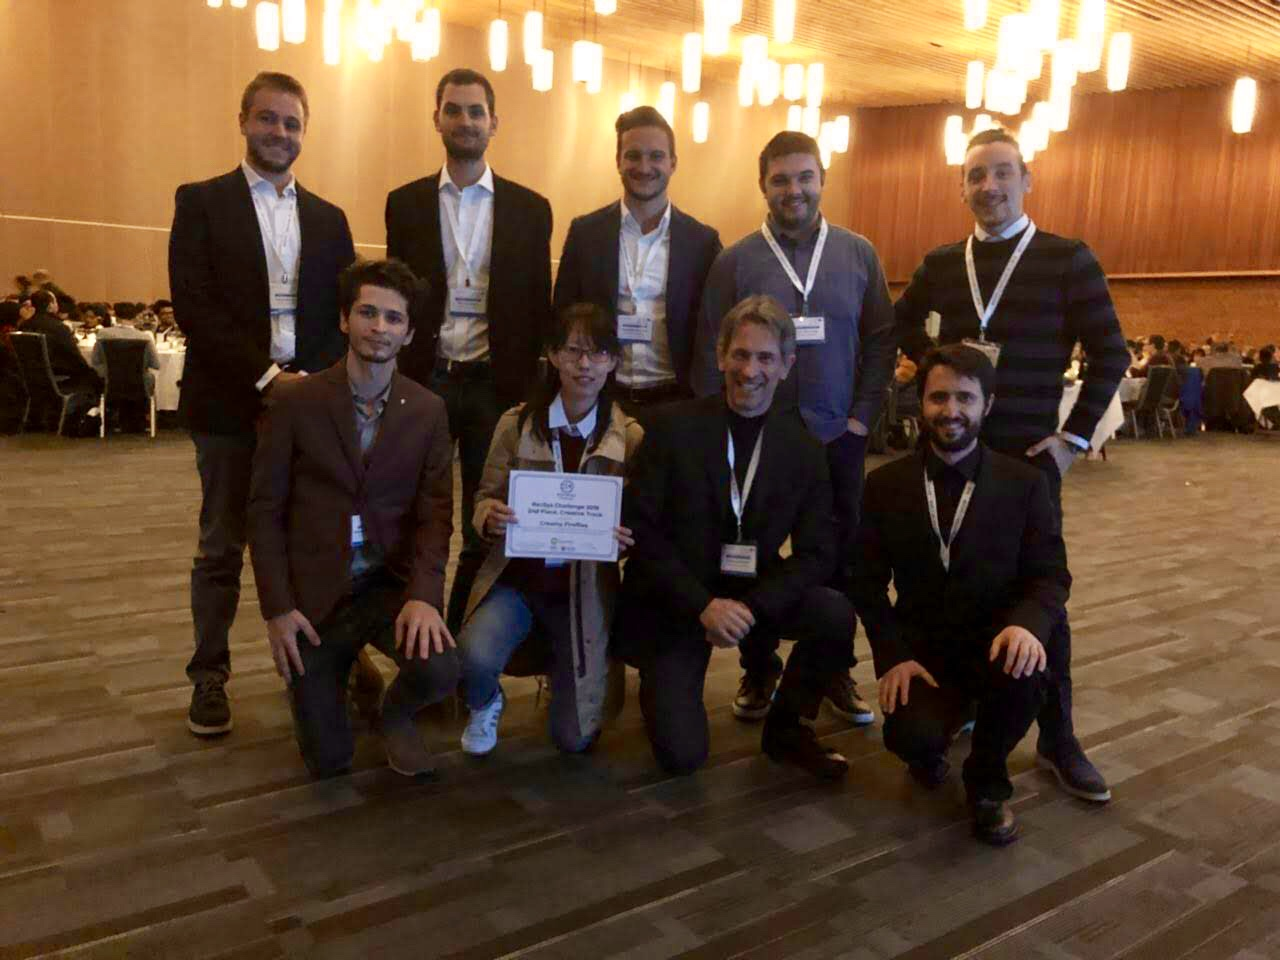 Our team at the RecSys challenge 2018